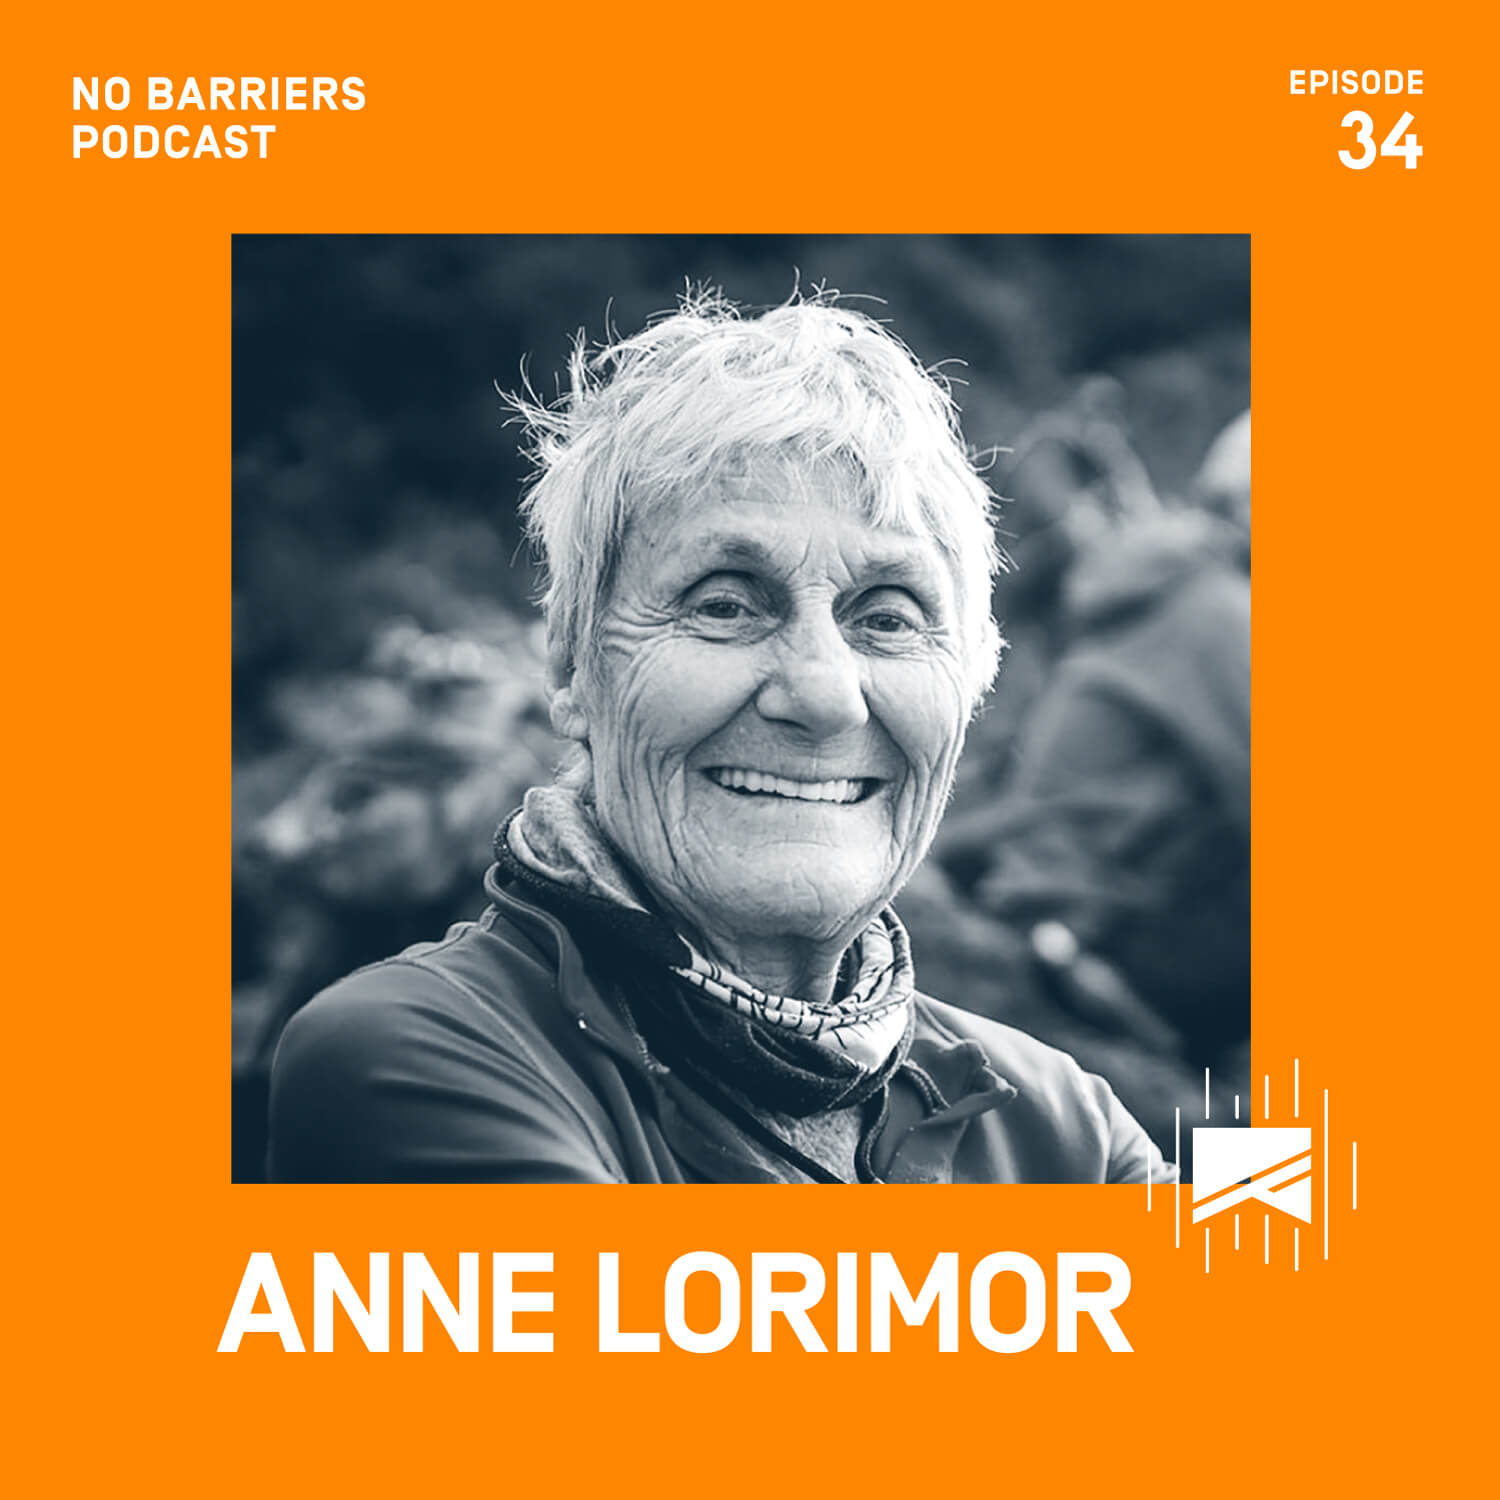 Anne Lorimor World Record Holder No Barriers Podcast